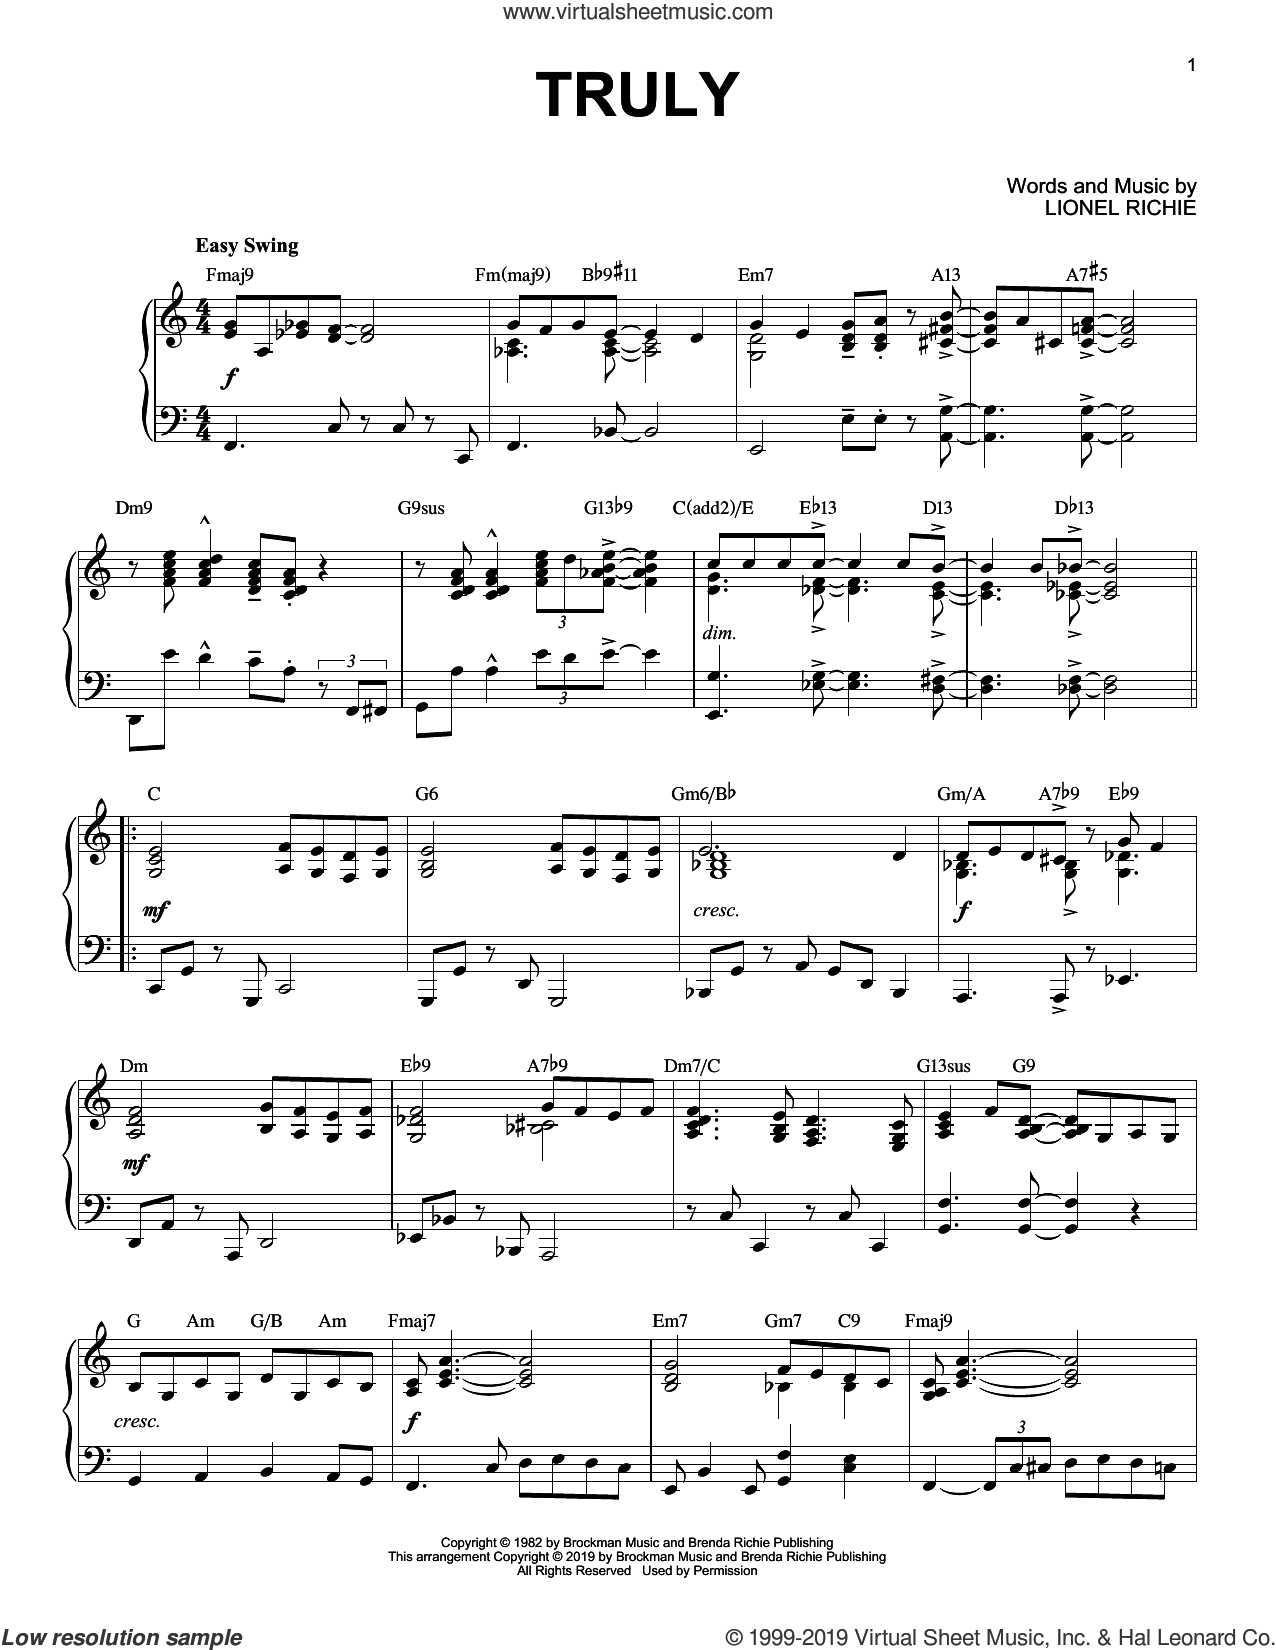 Truly [Jazz version] sheet music for piano solo by Lionel Richie, intermediate skill level